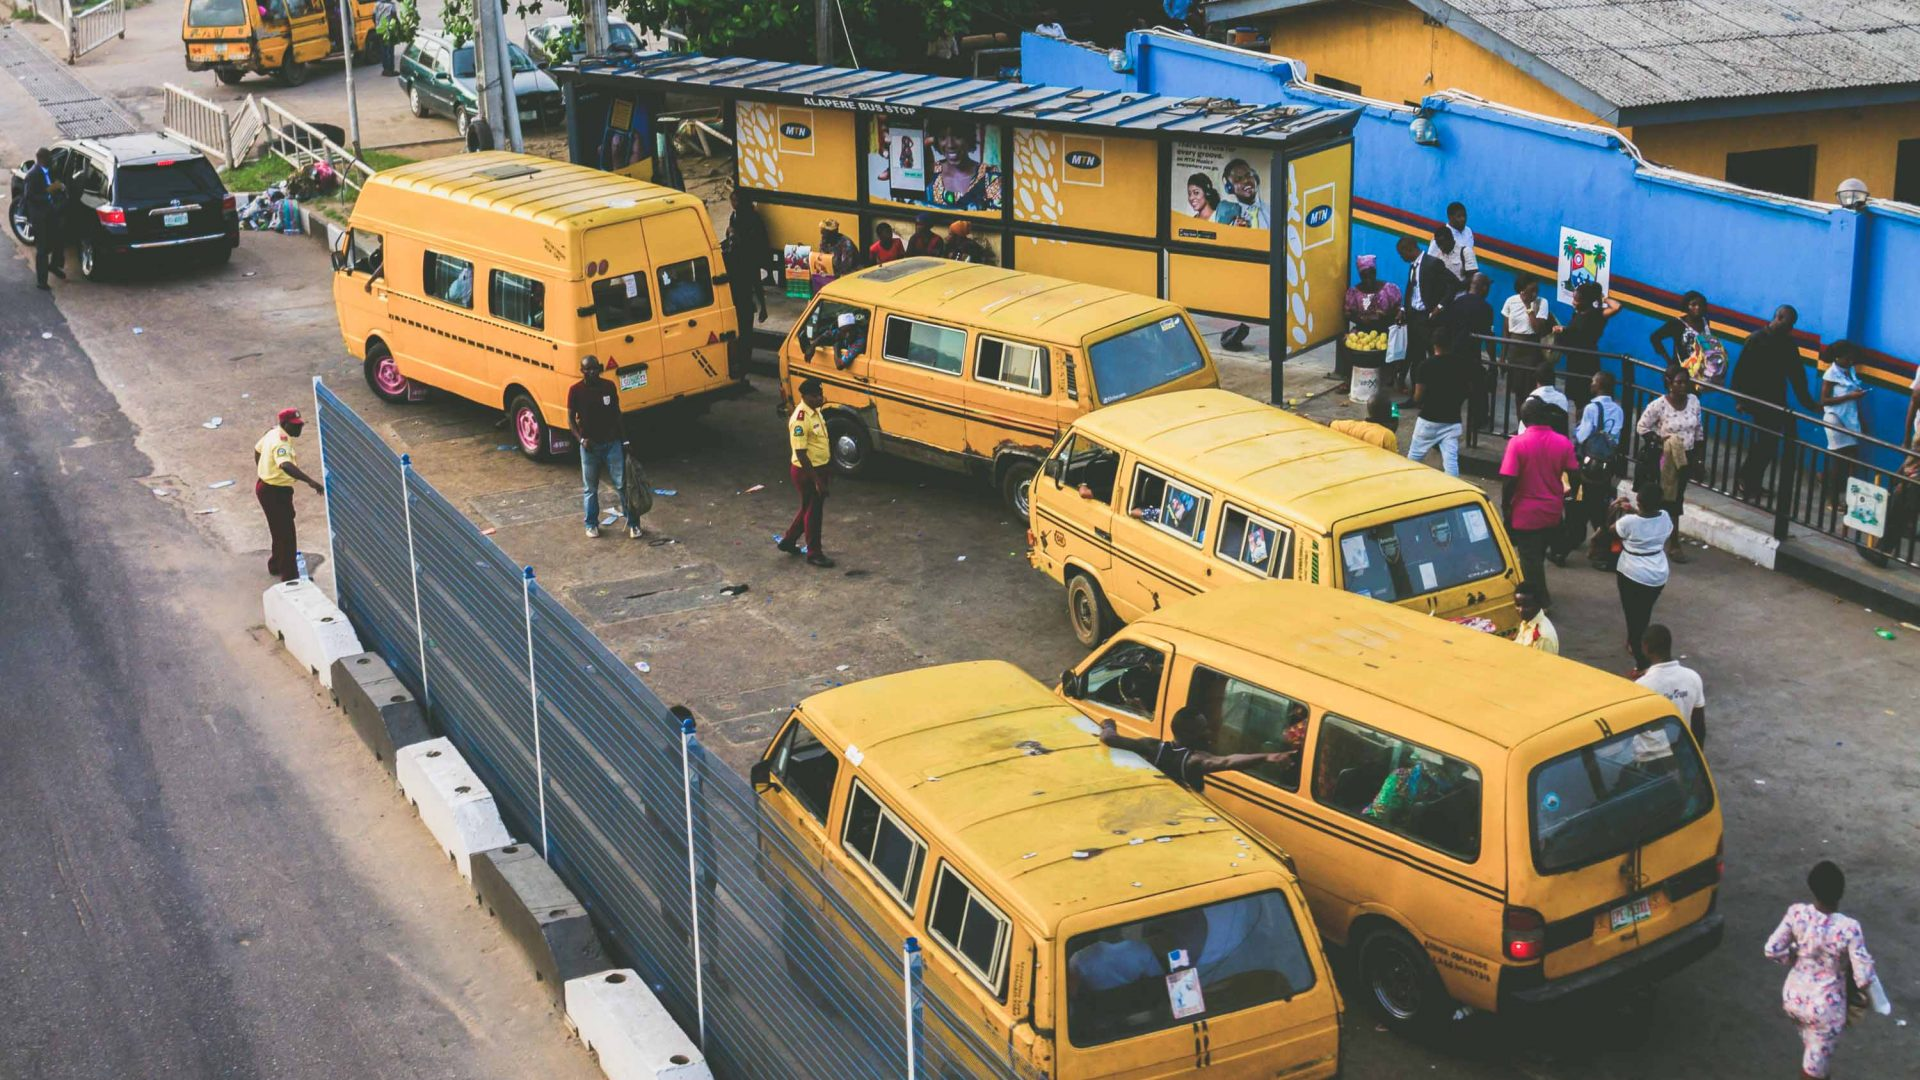 Mini vans in Lagos Nigeria.